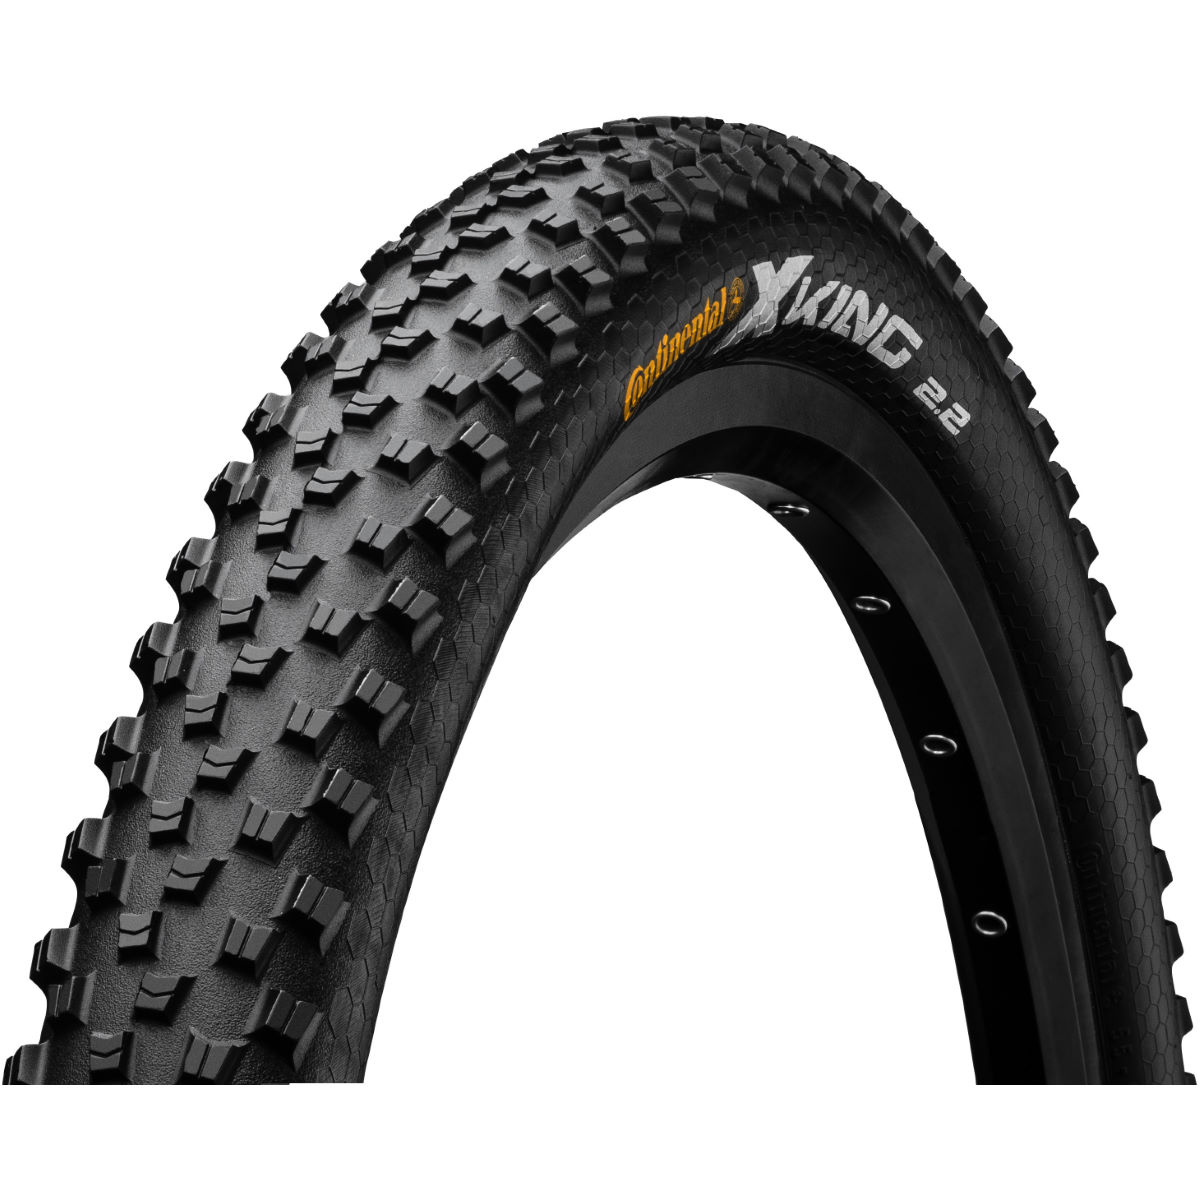 Pneu VTT Continental X King (souple, ProTection, 2018) - 2.3' 27.5'